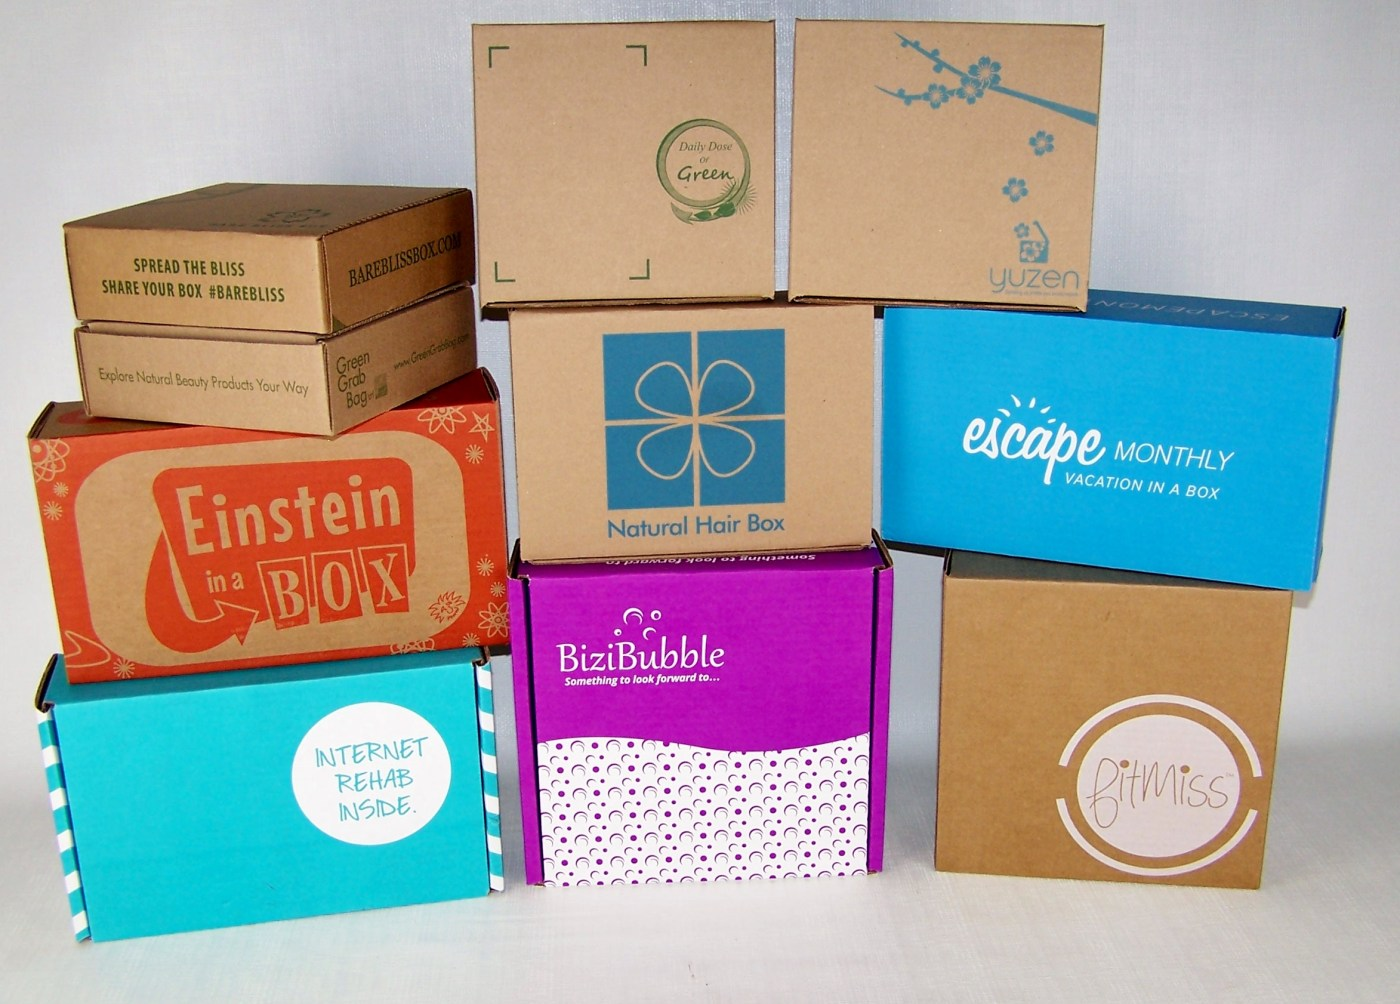 Ship subscription boxes internationally